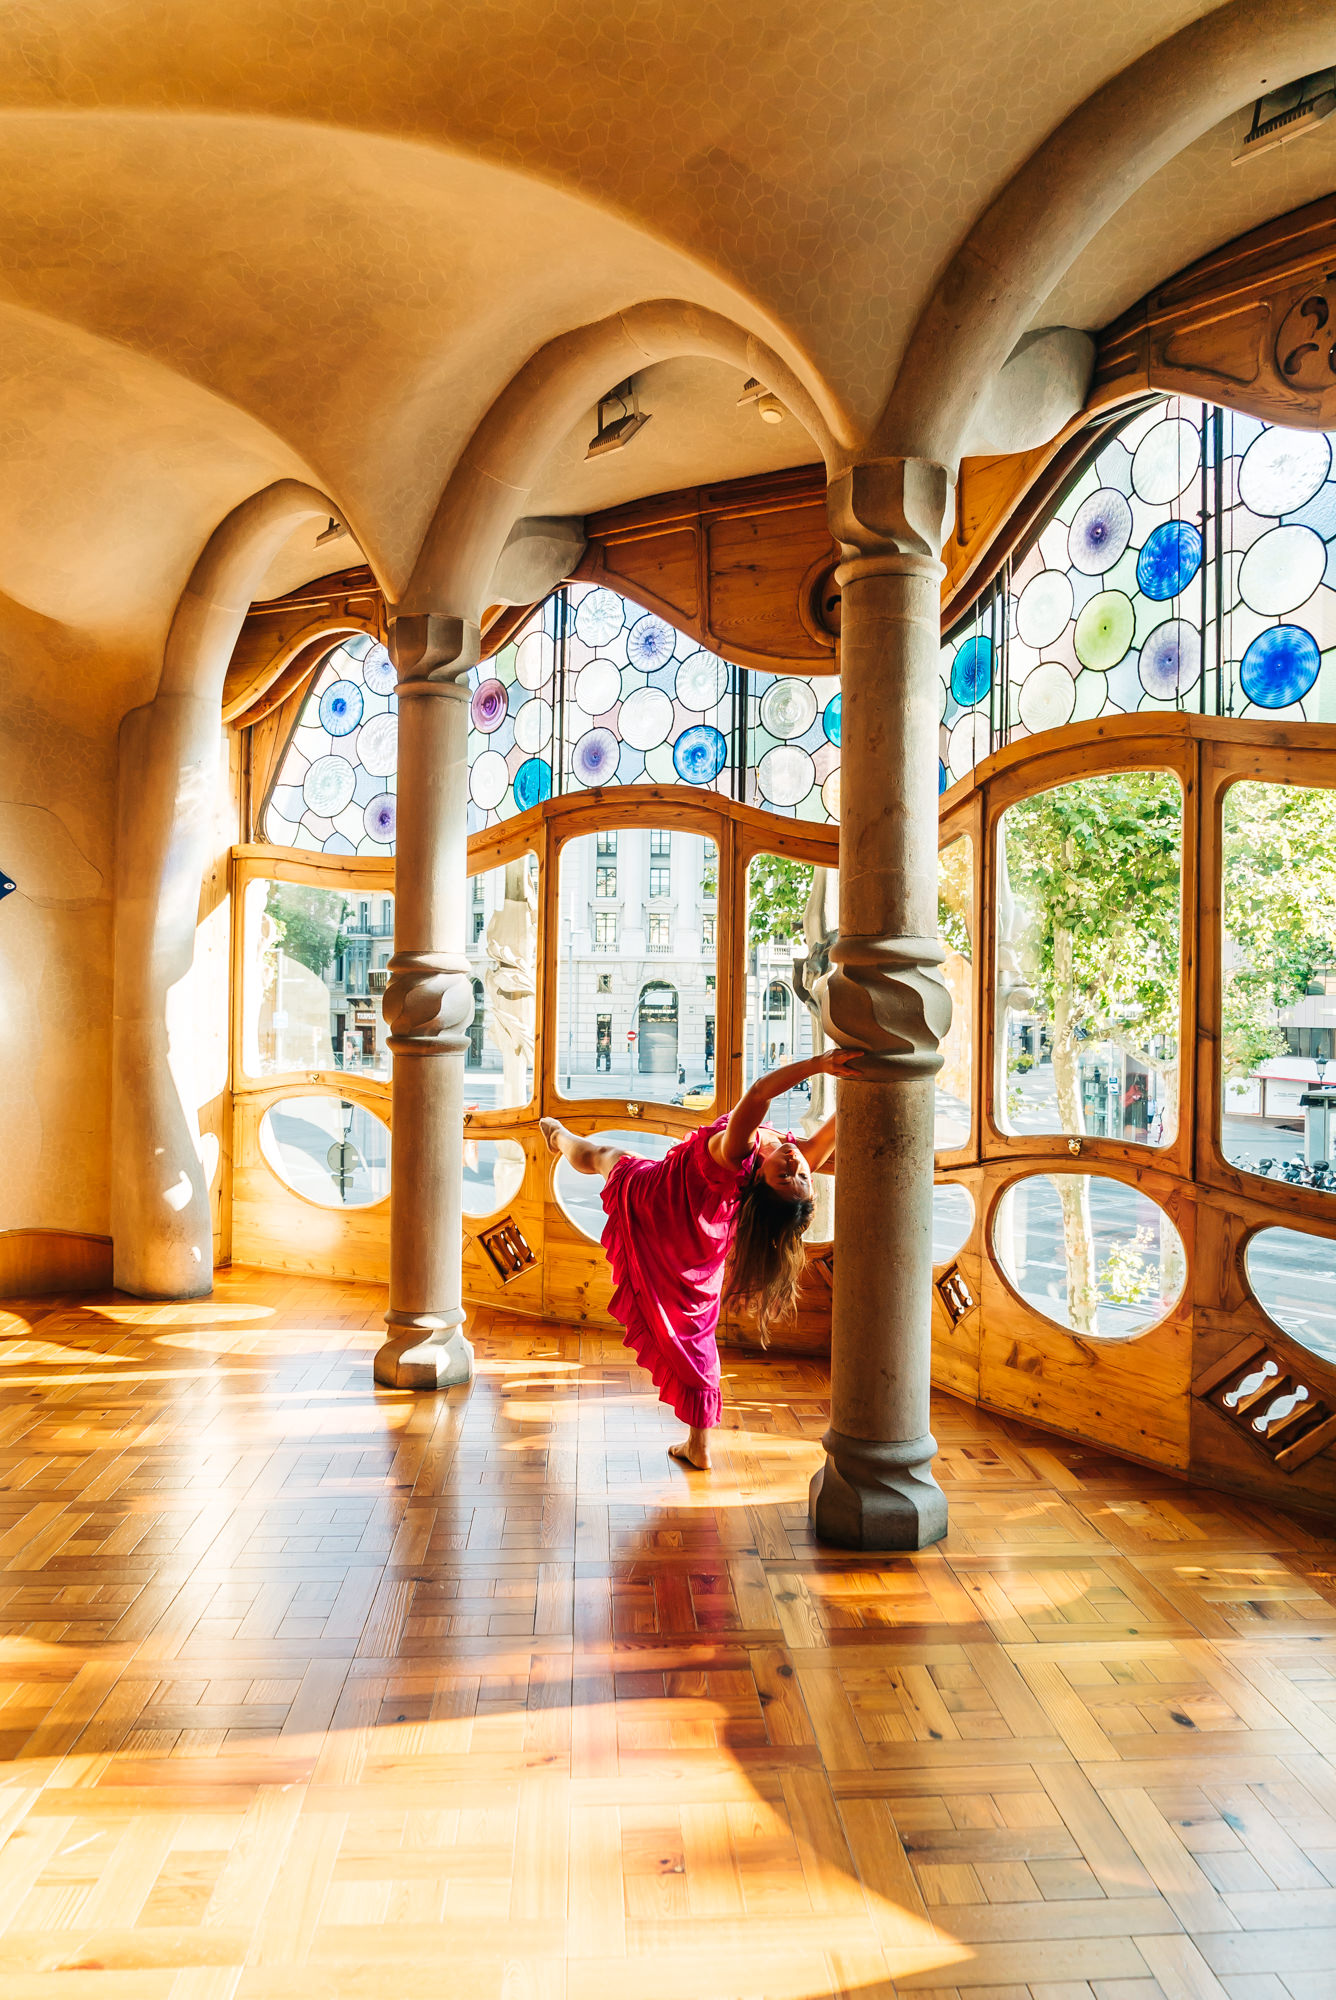 Some interesting poses going on at Casa Batlló